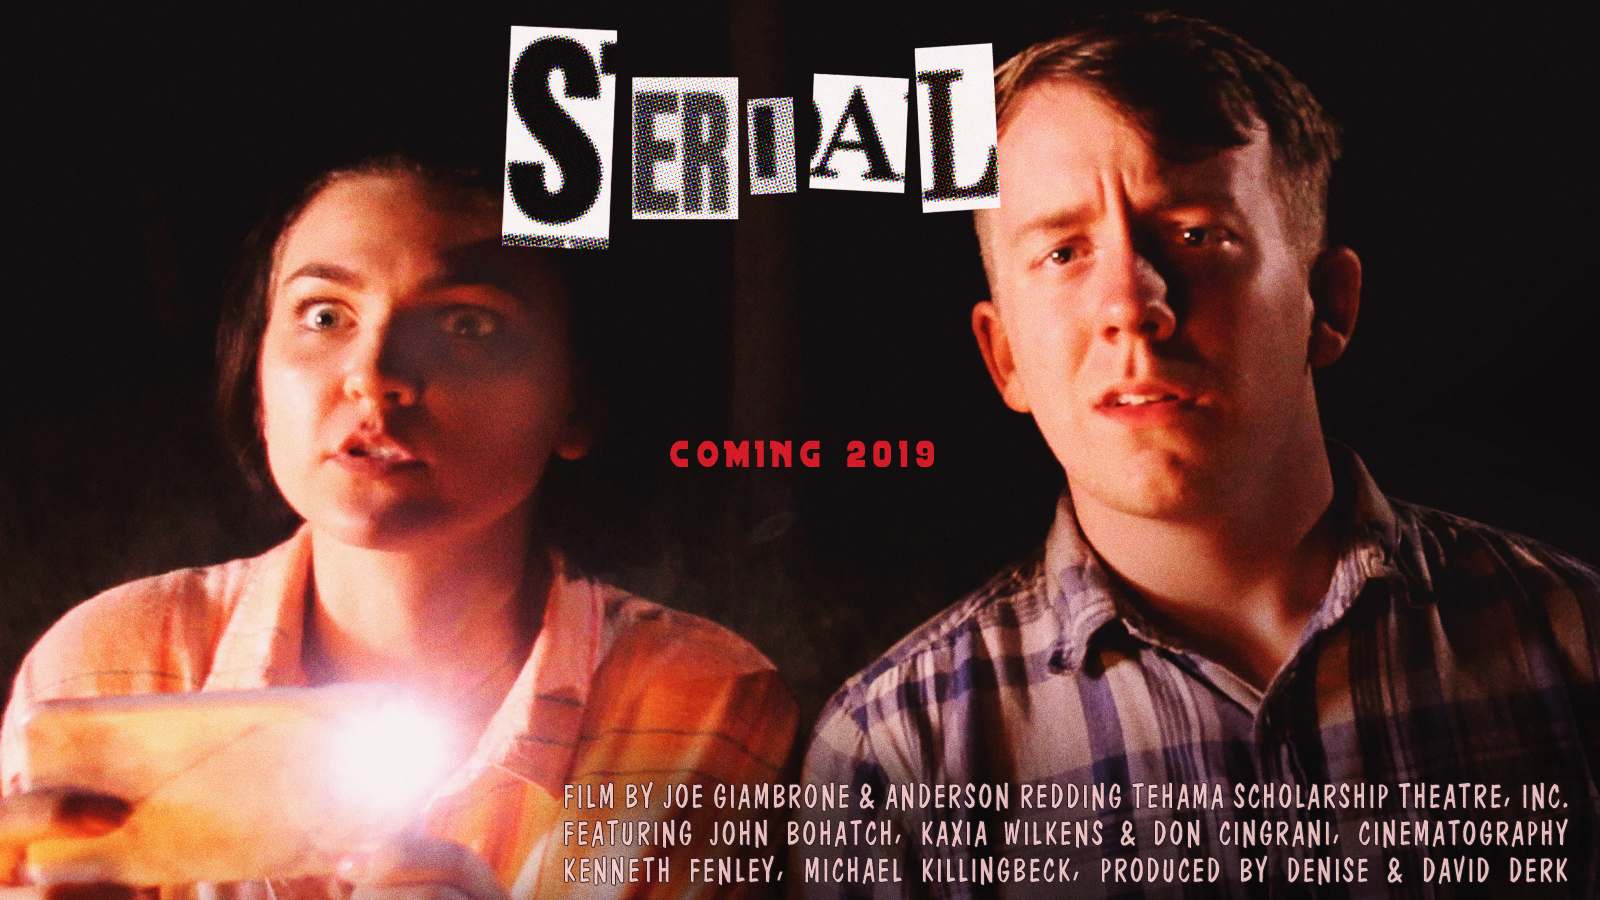 SERIAL-POSTER-wide-2 copy